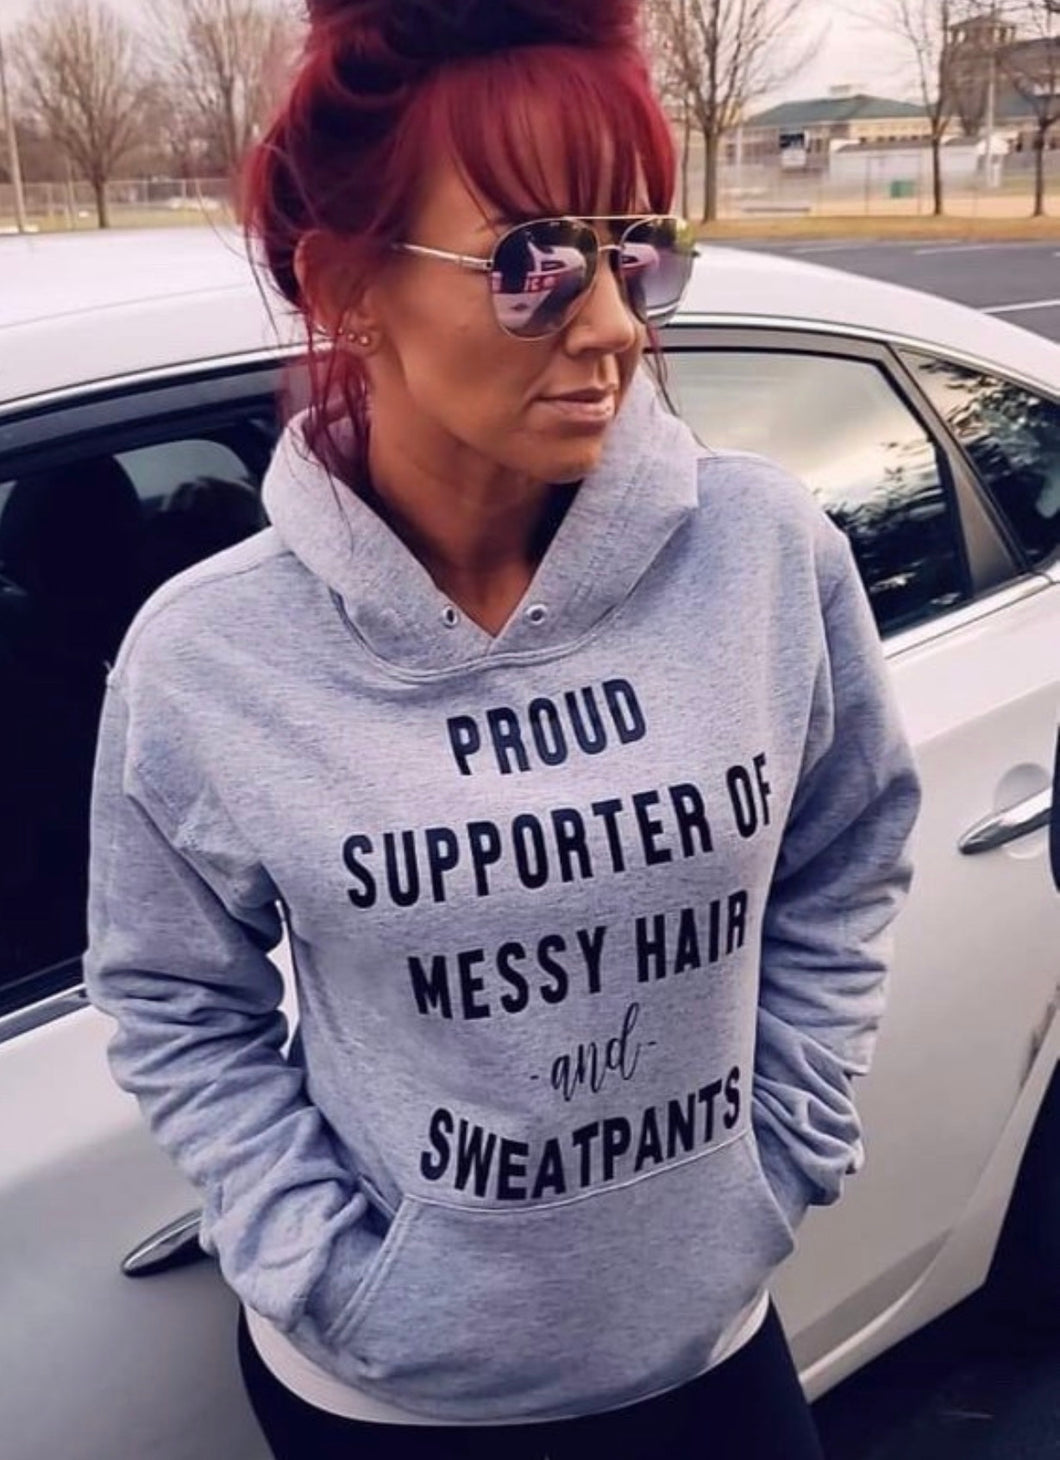 Proud supporter of messy hair and sweatpants funny graphic hoodie messy bun life sweats - Mavictoria Designs Hot Press Express